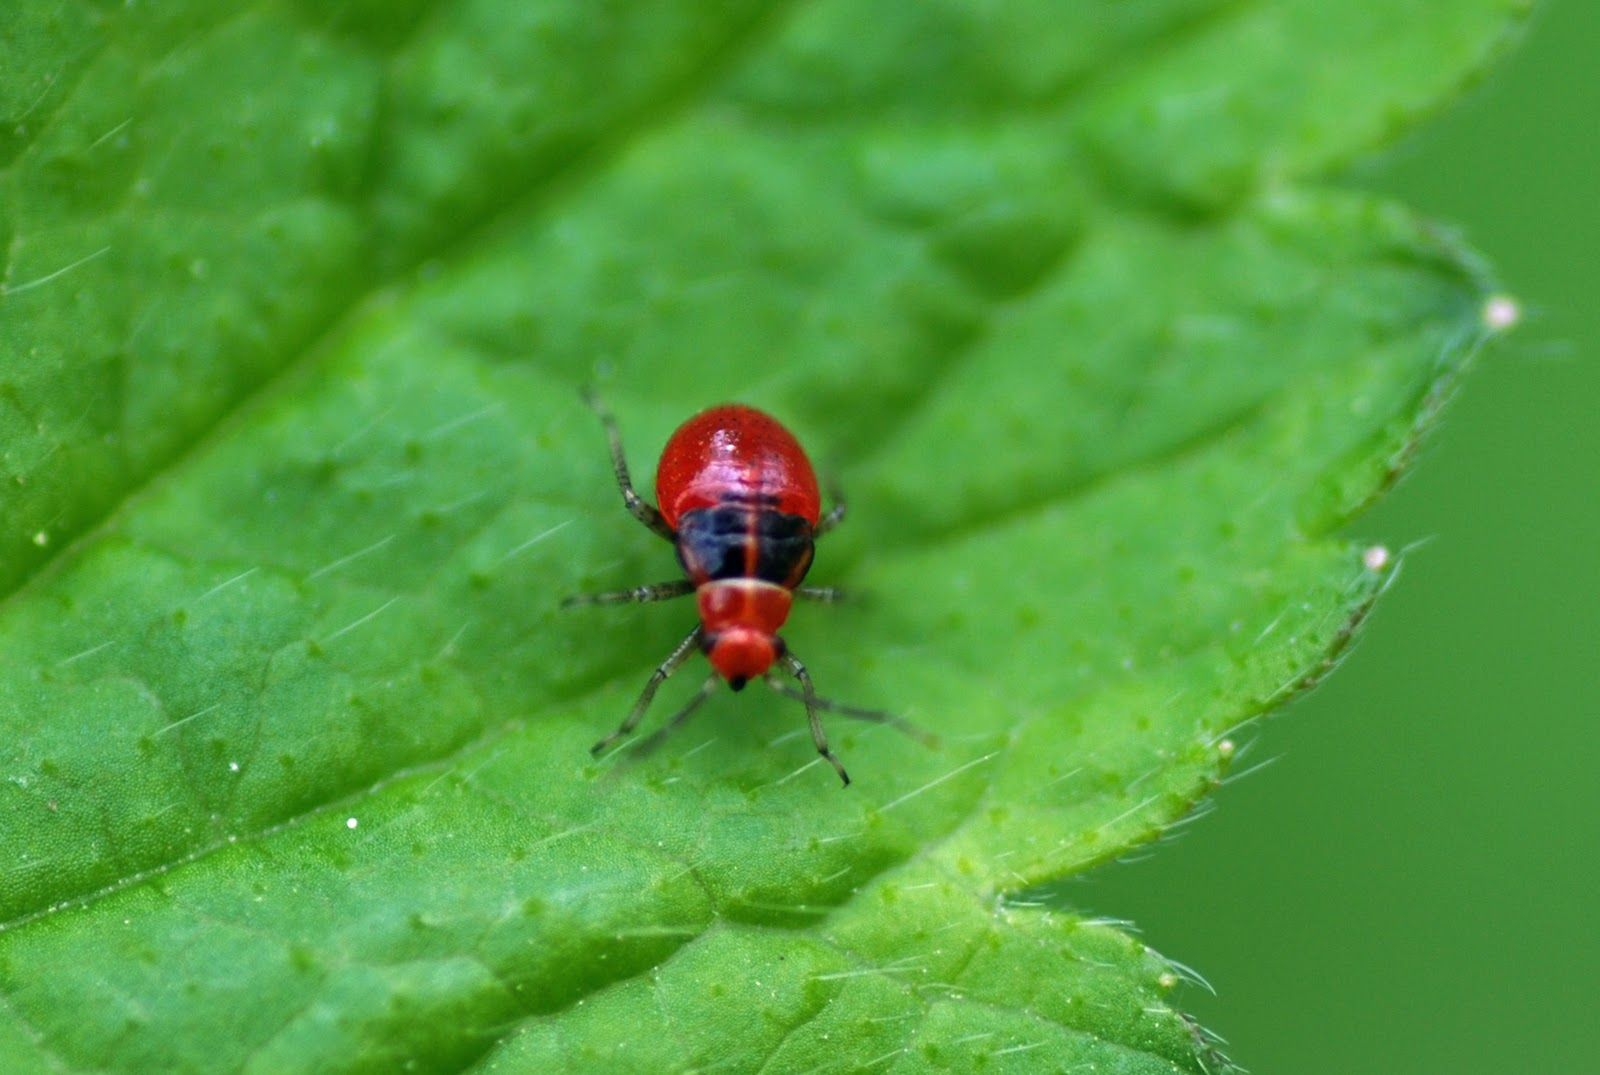 Best Photos Pictures And Images About Bugs Types Of